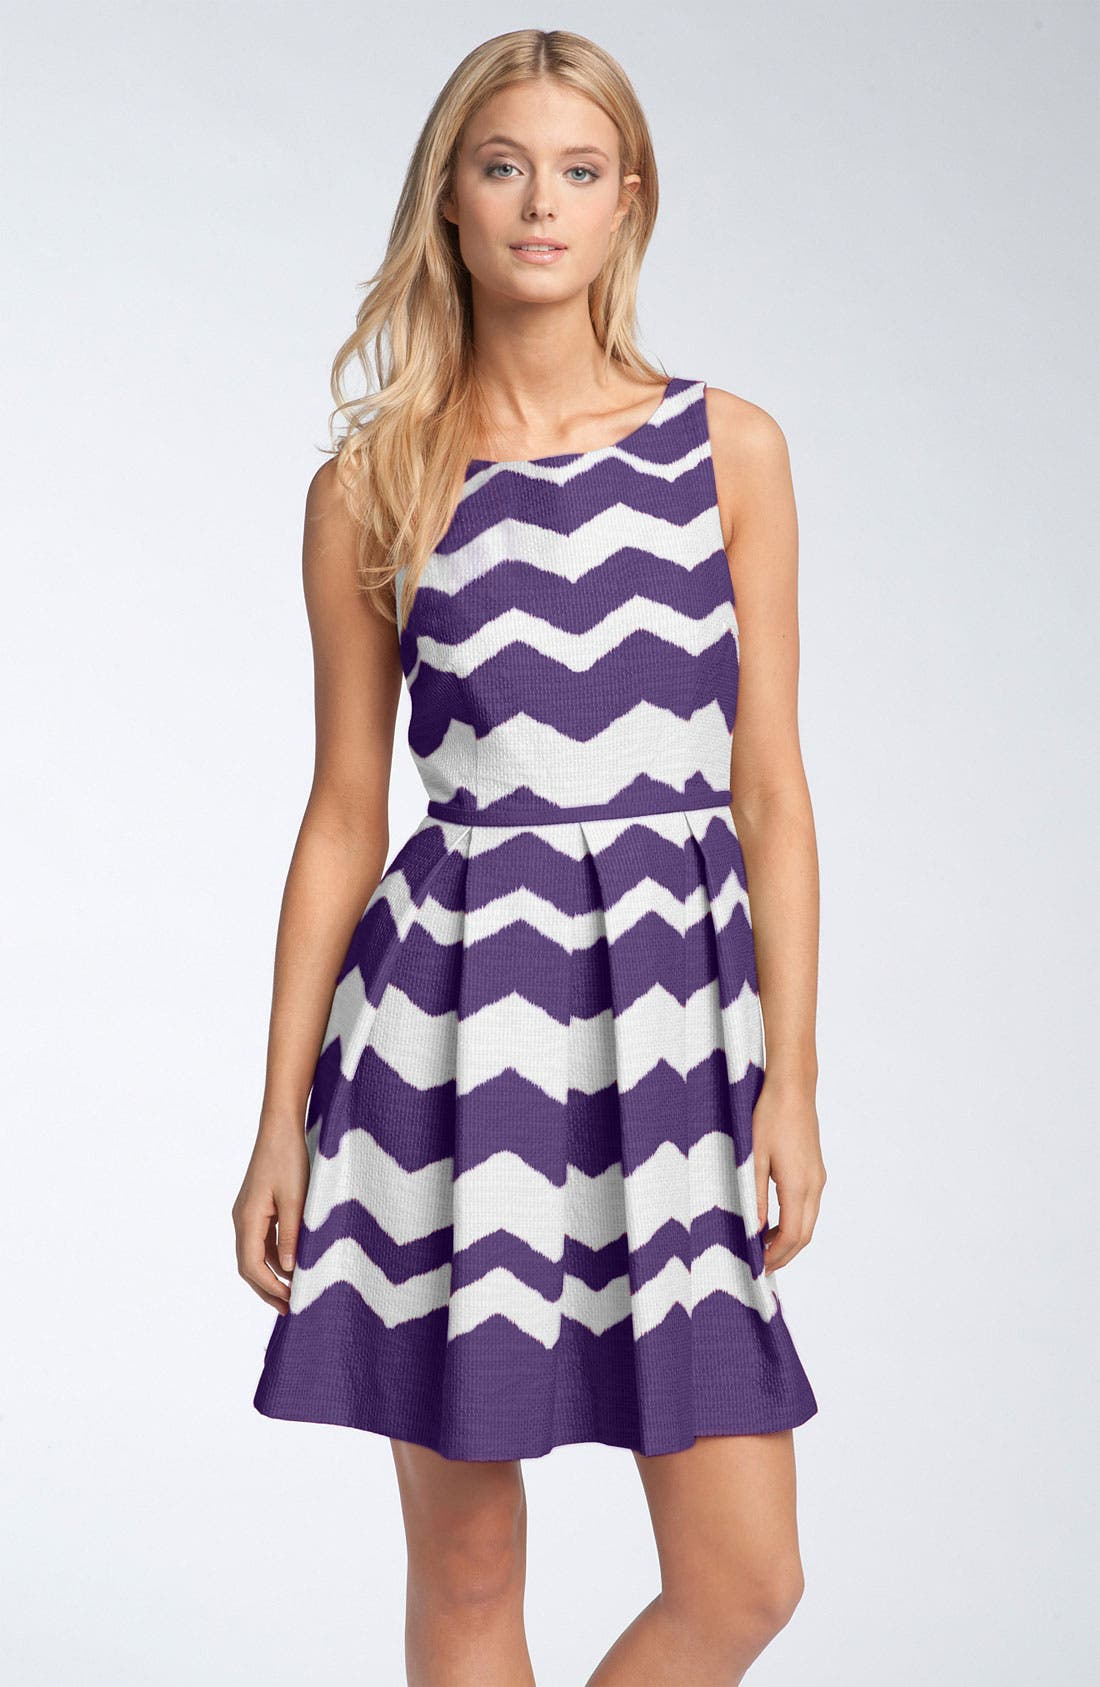 Main Image - Taylor Dresses 'Zigzag' Fit & Flare Dress